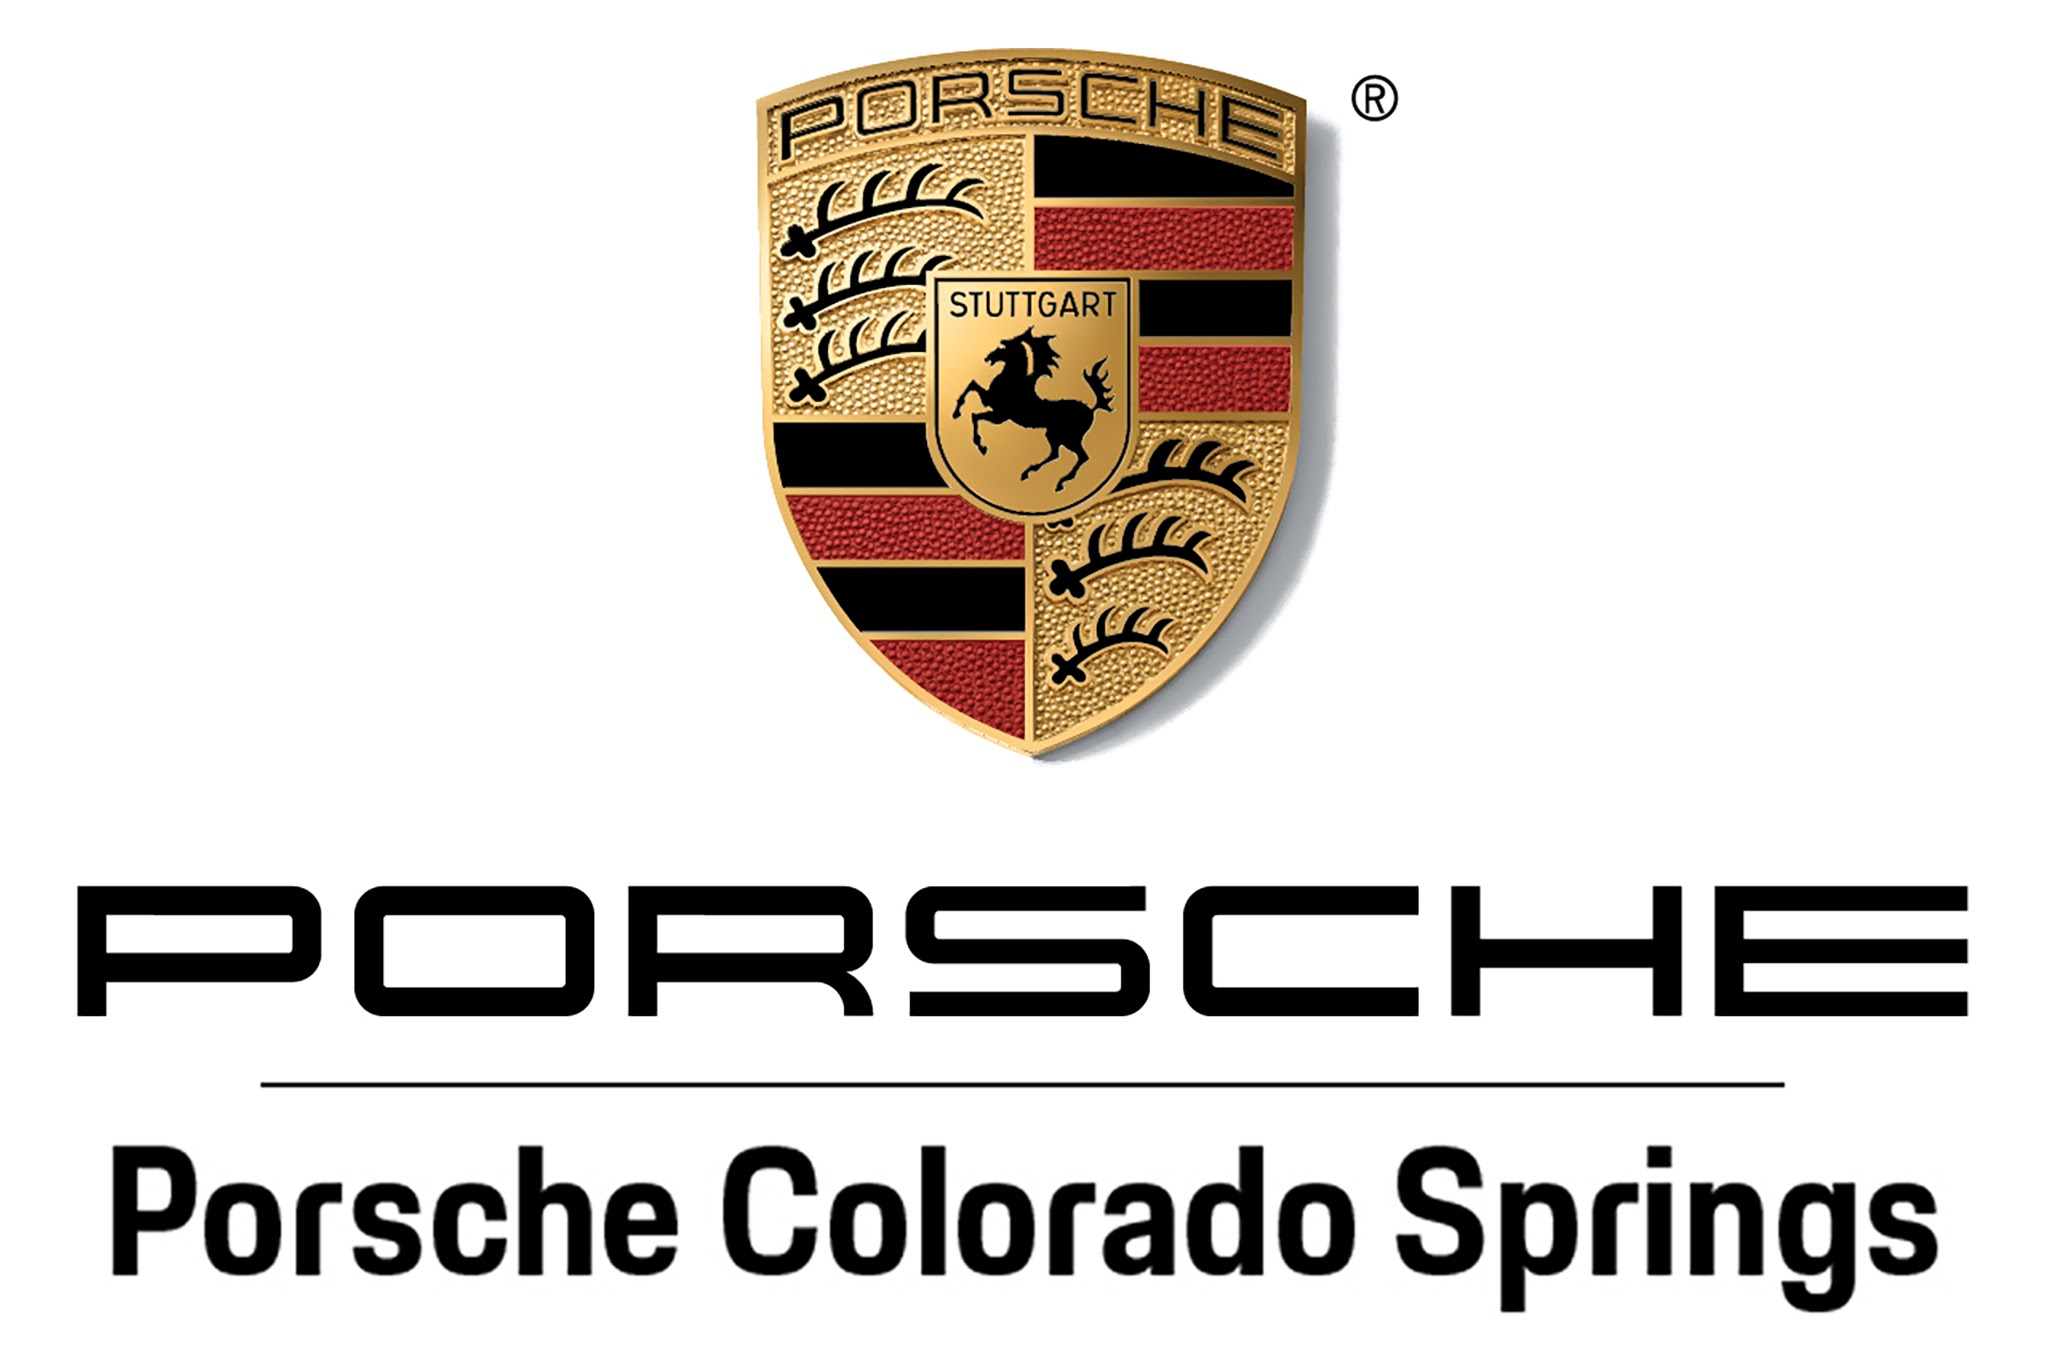 Porsche of Colorado Springs